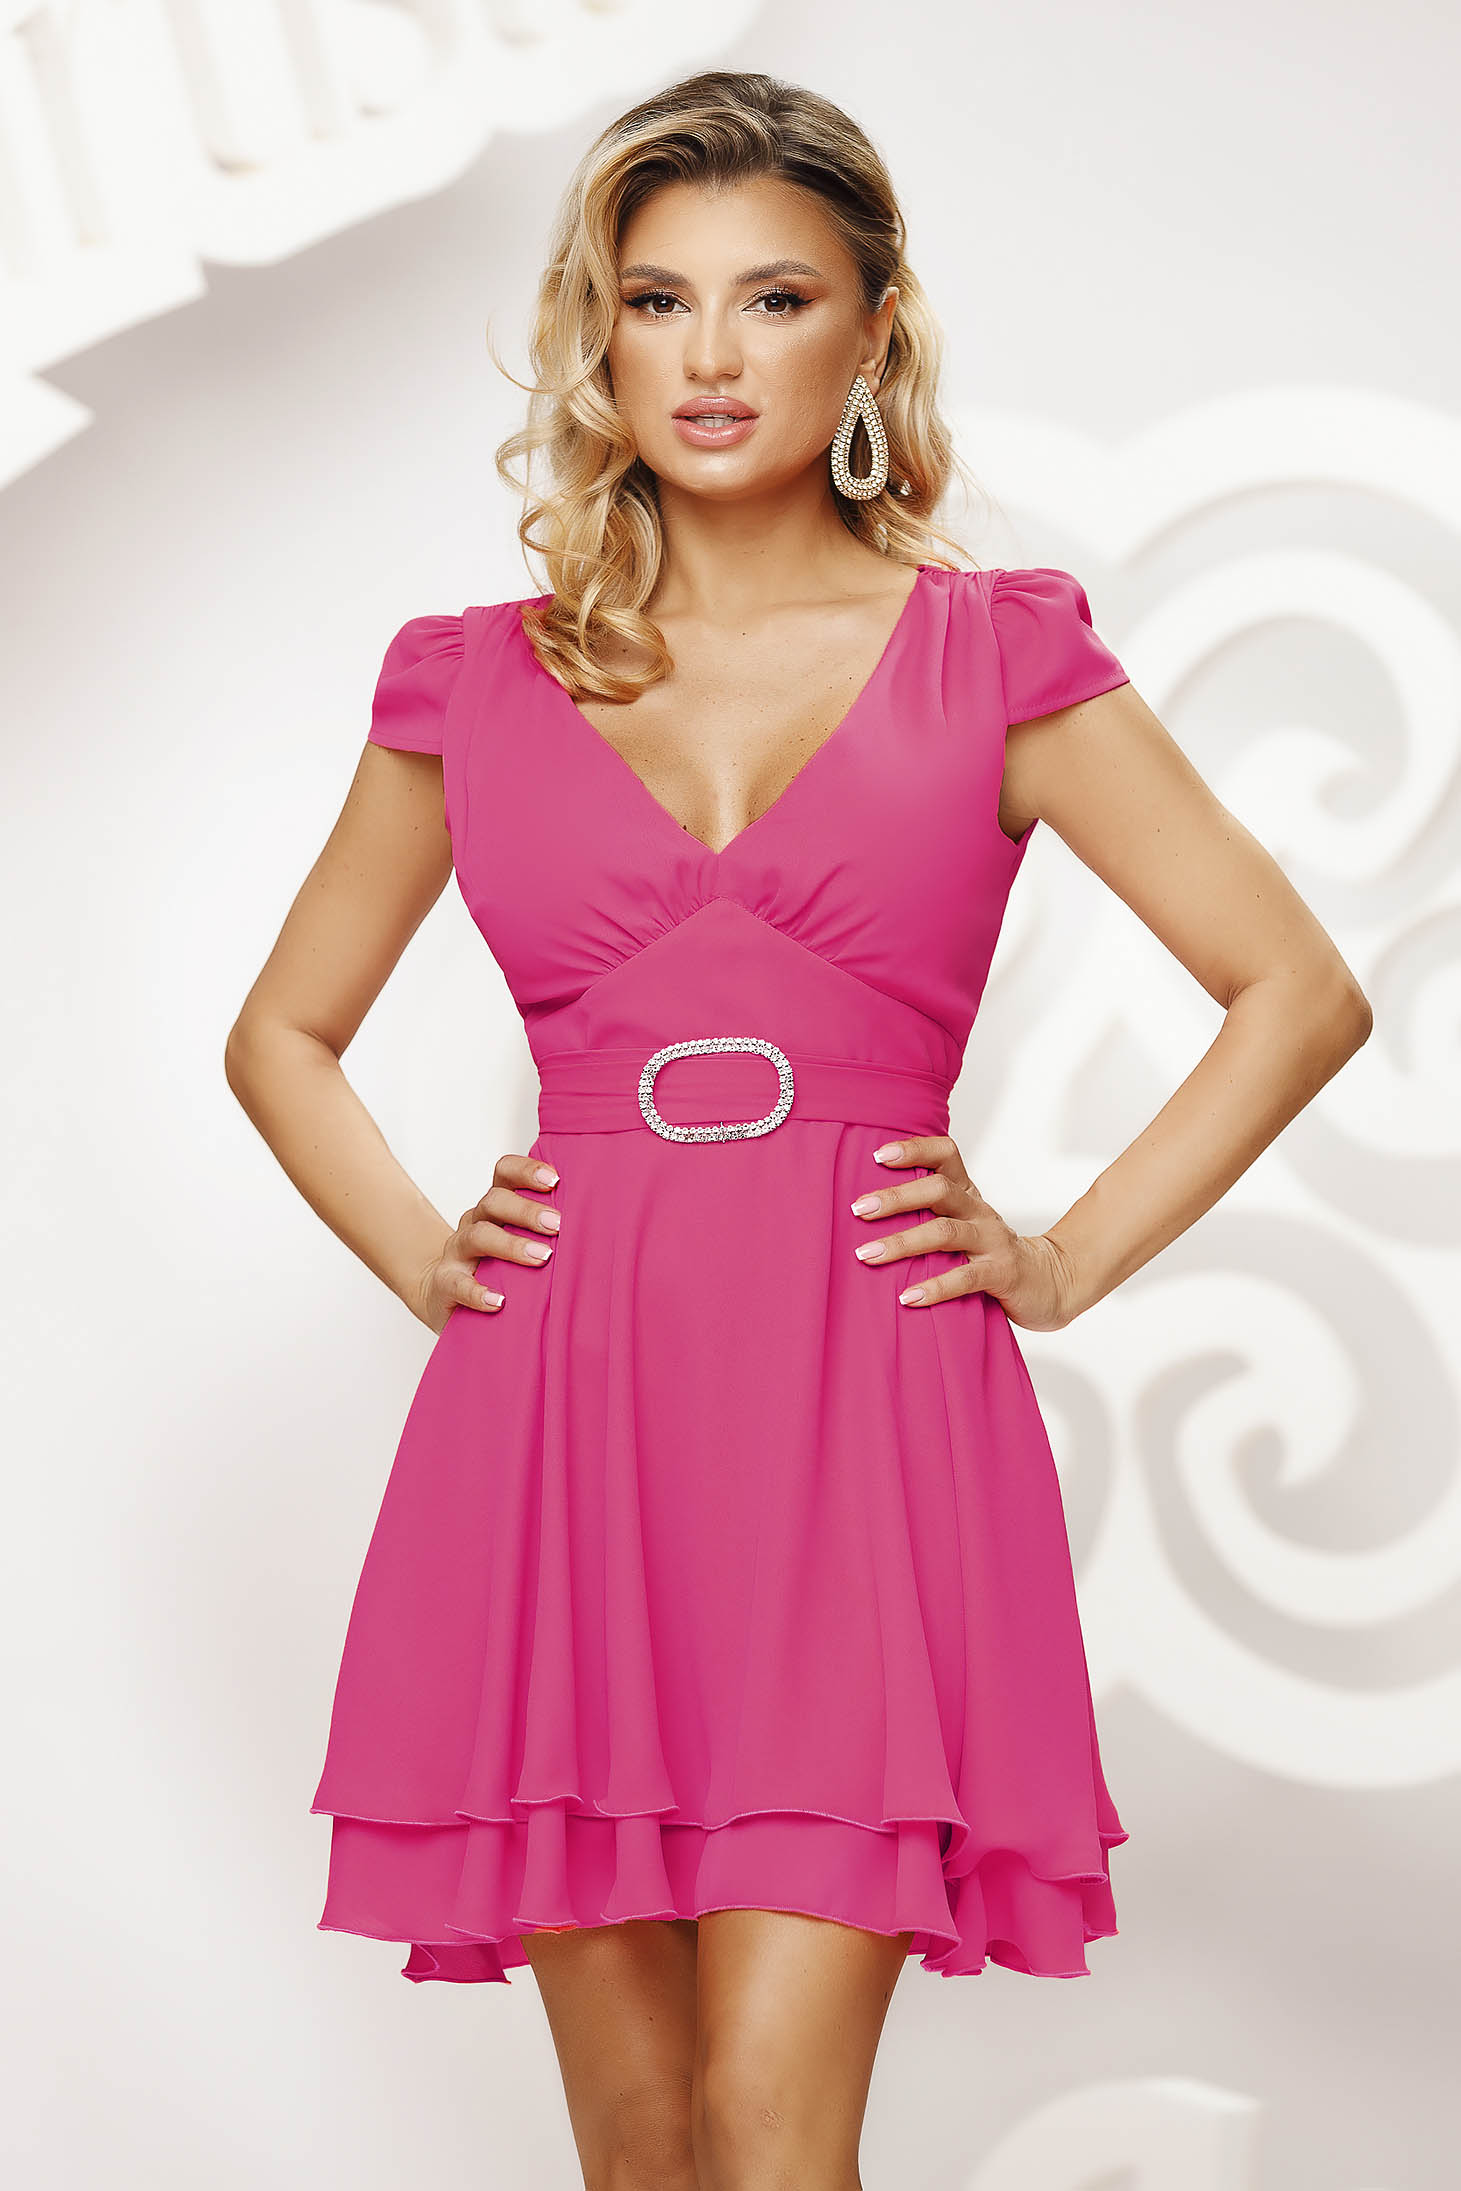 Pink dress short cut occasional cloche airy fabric short sleeves